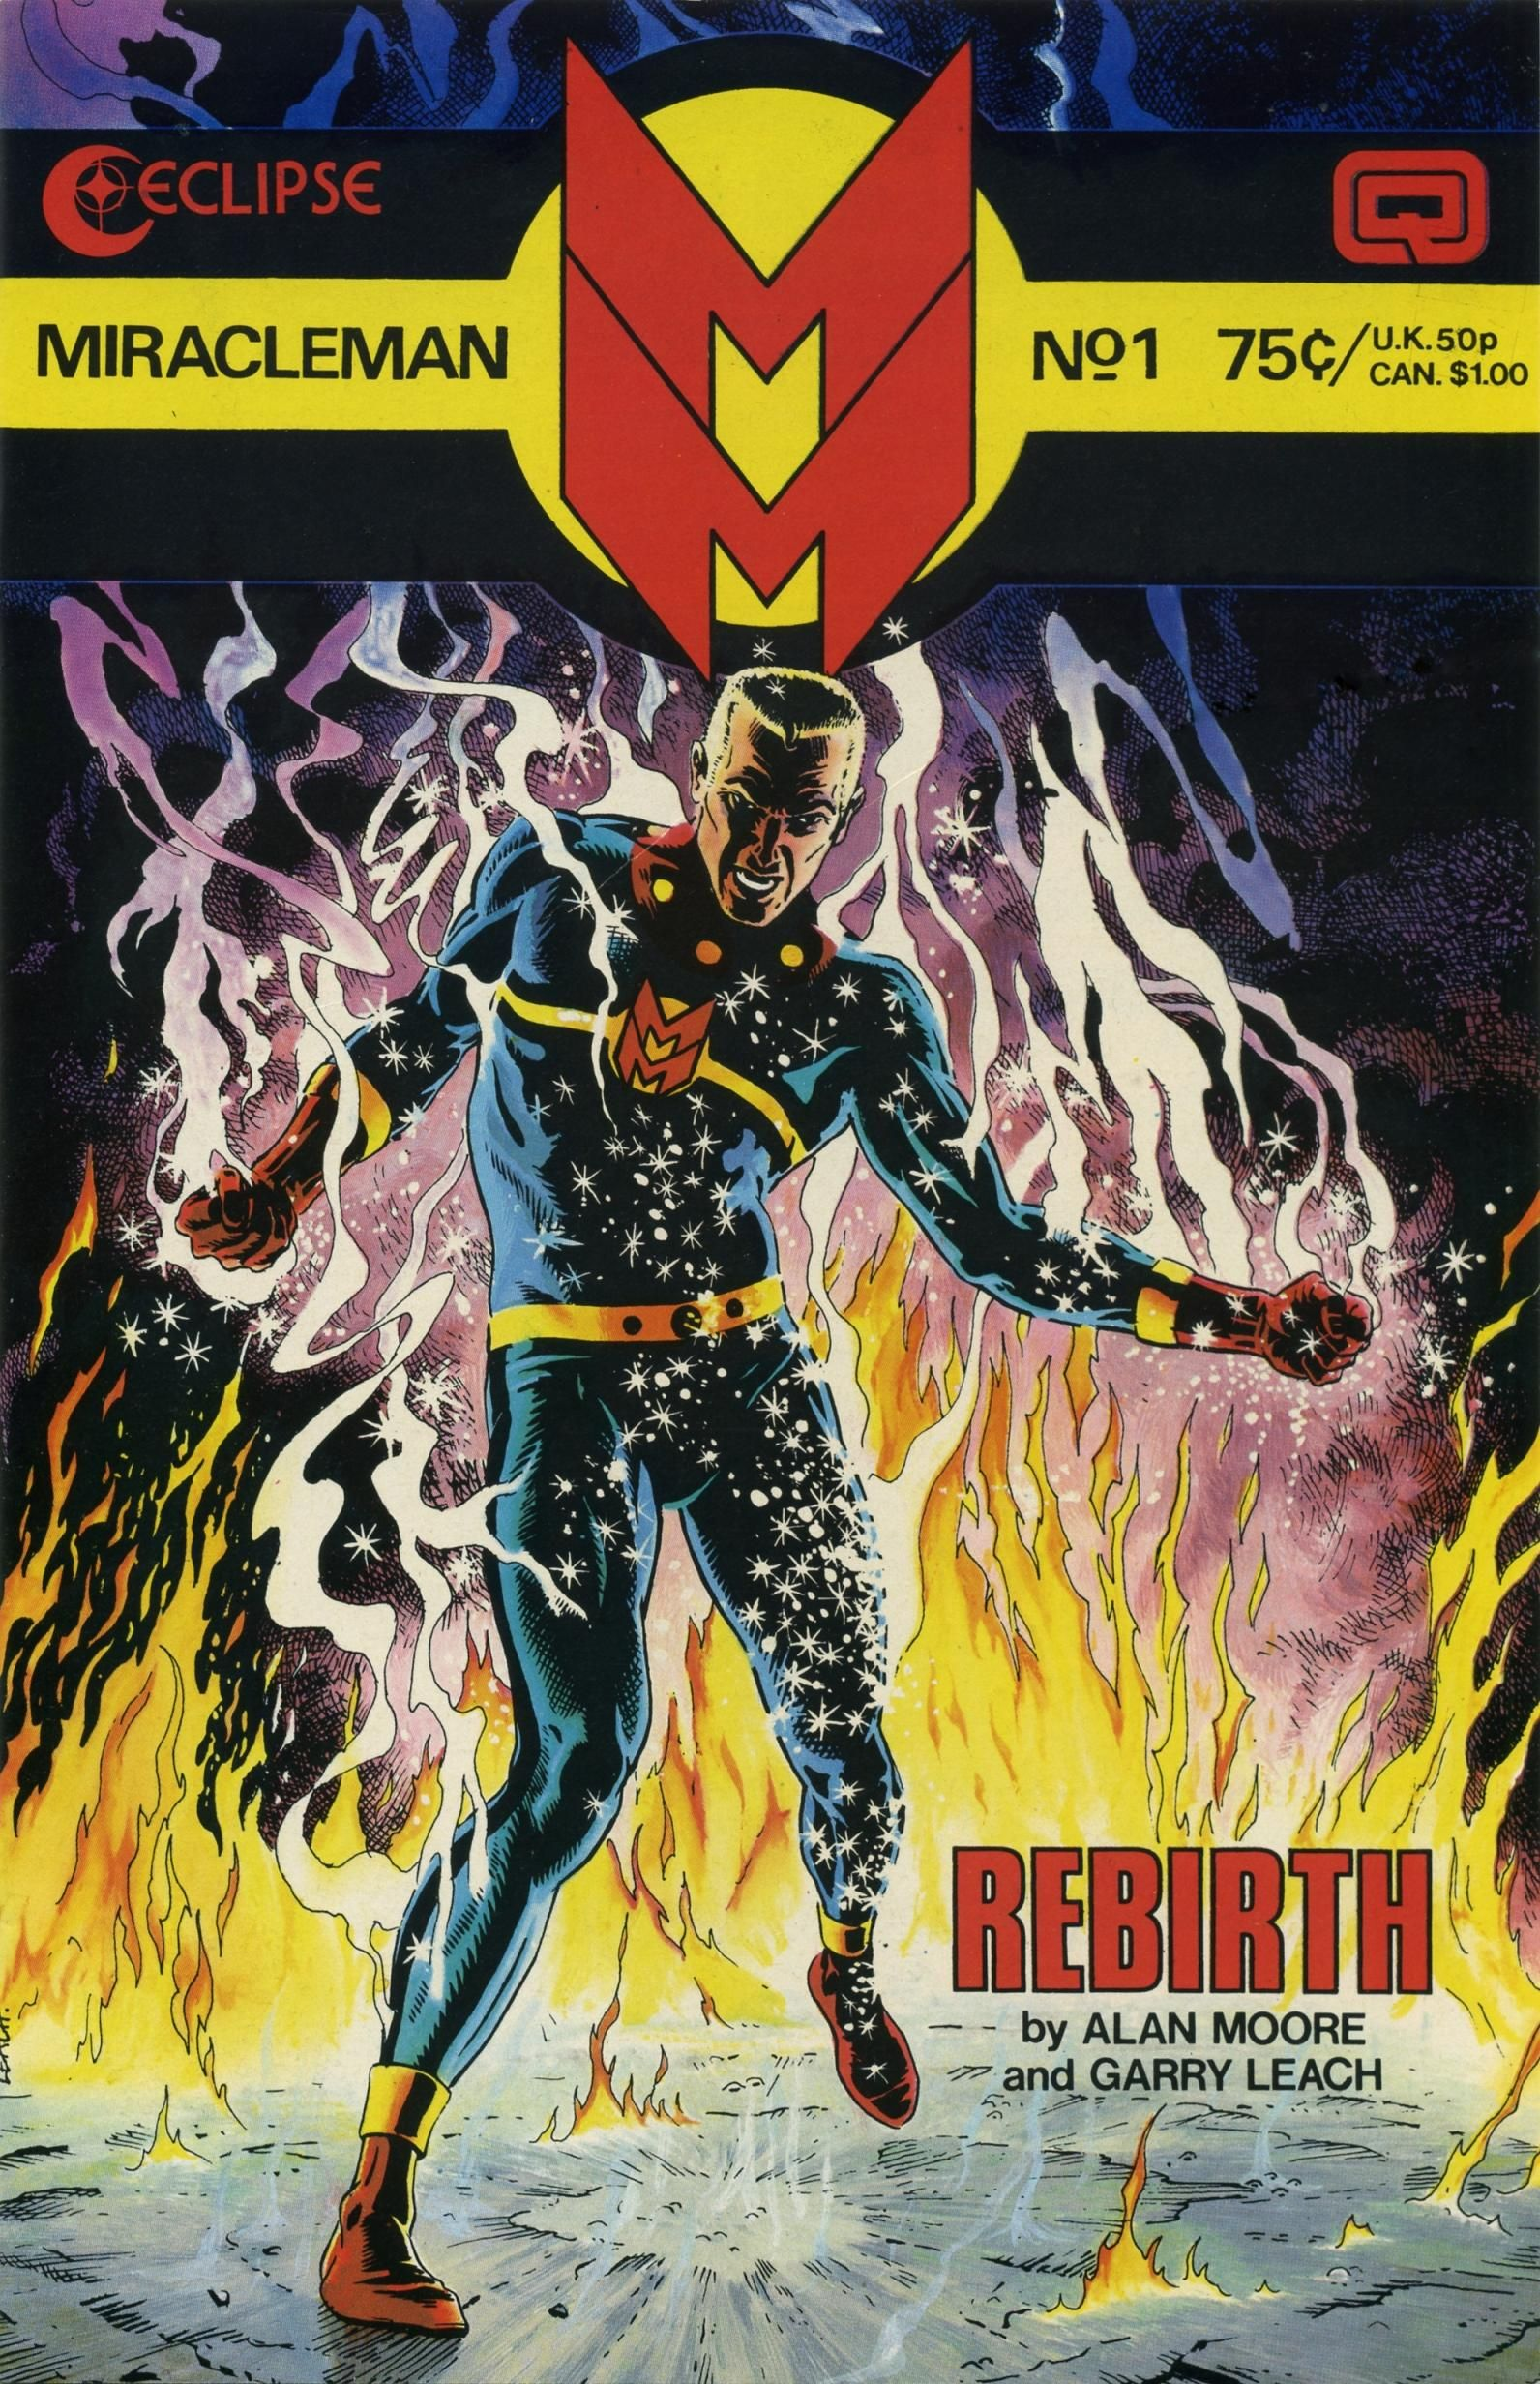 COME L'INGLESE MARVELMAN È FINITO ALLA MARVEL | Comic Book